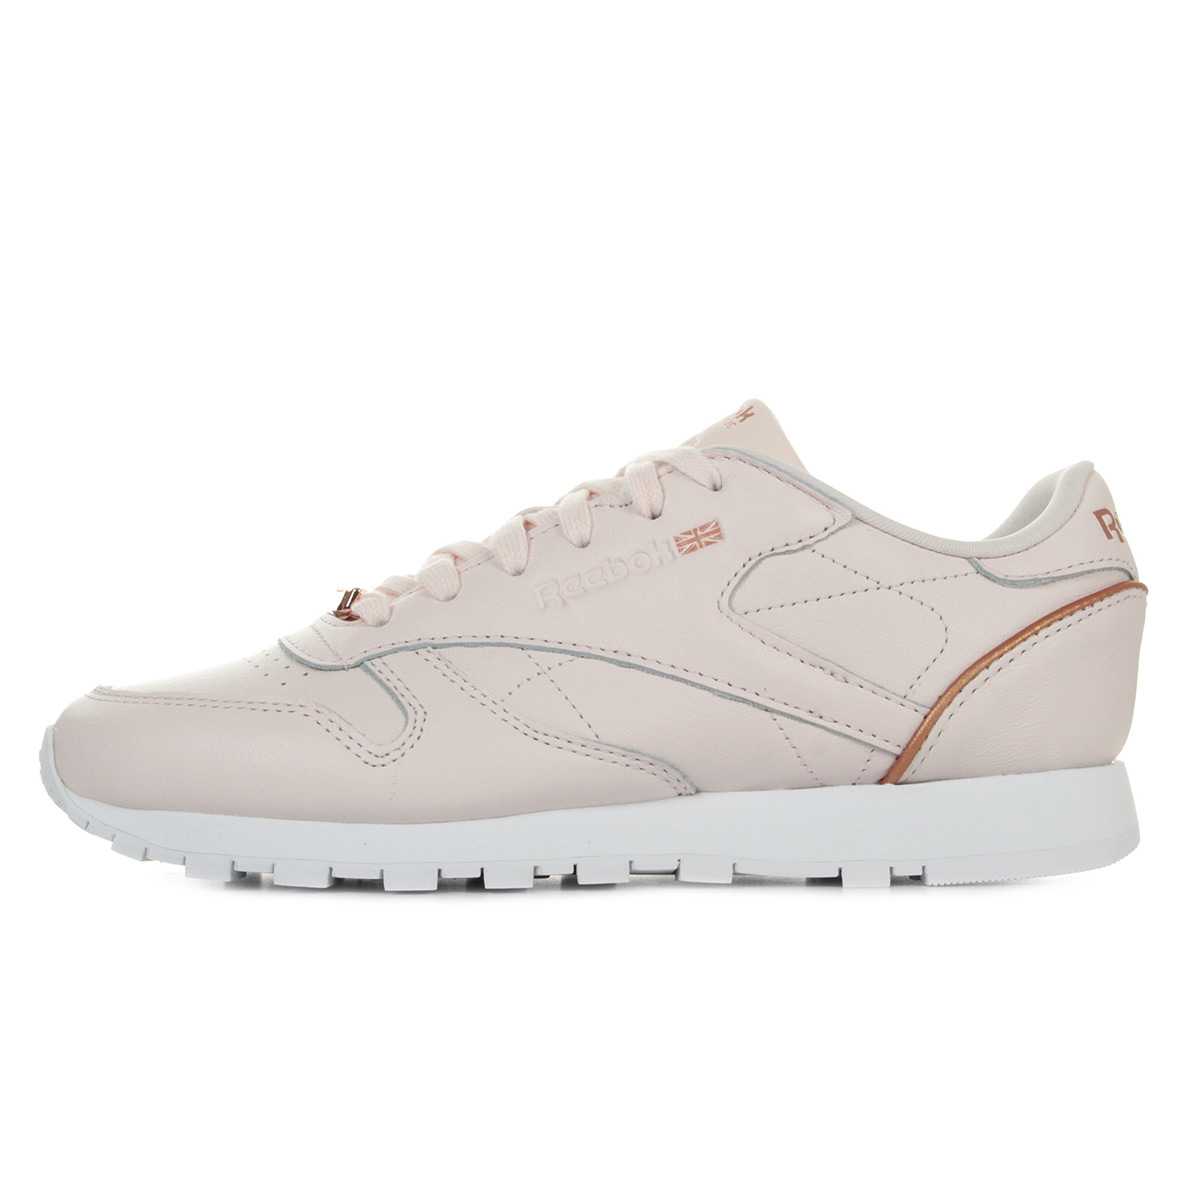 Reebok Classic Leather Hw BS9880, Baskets mode femme